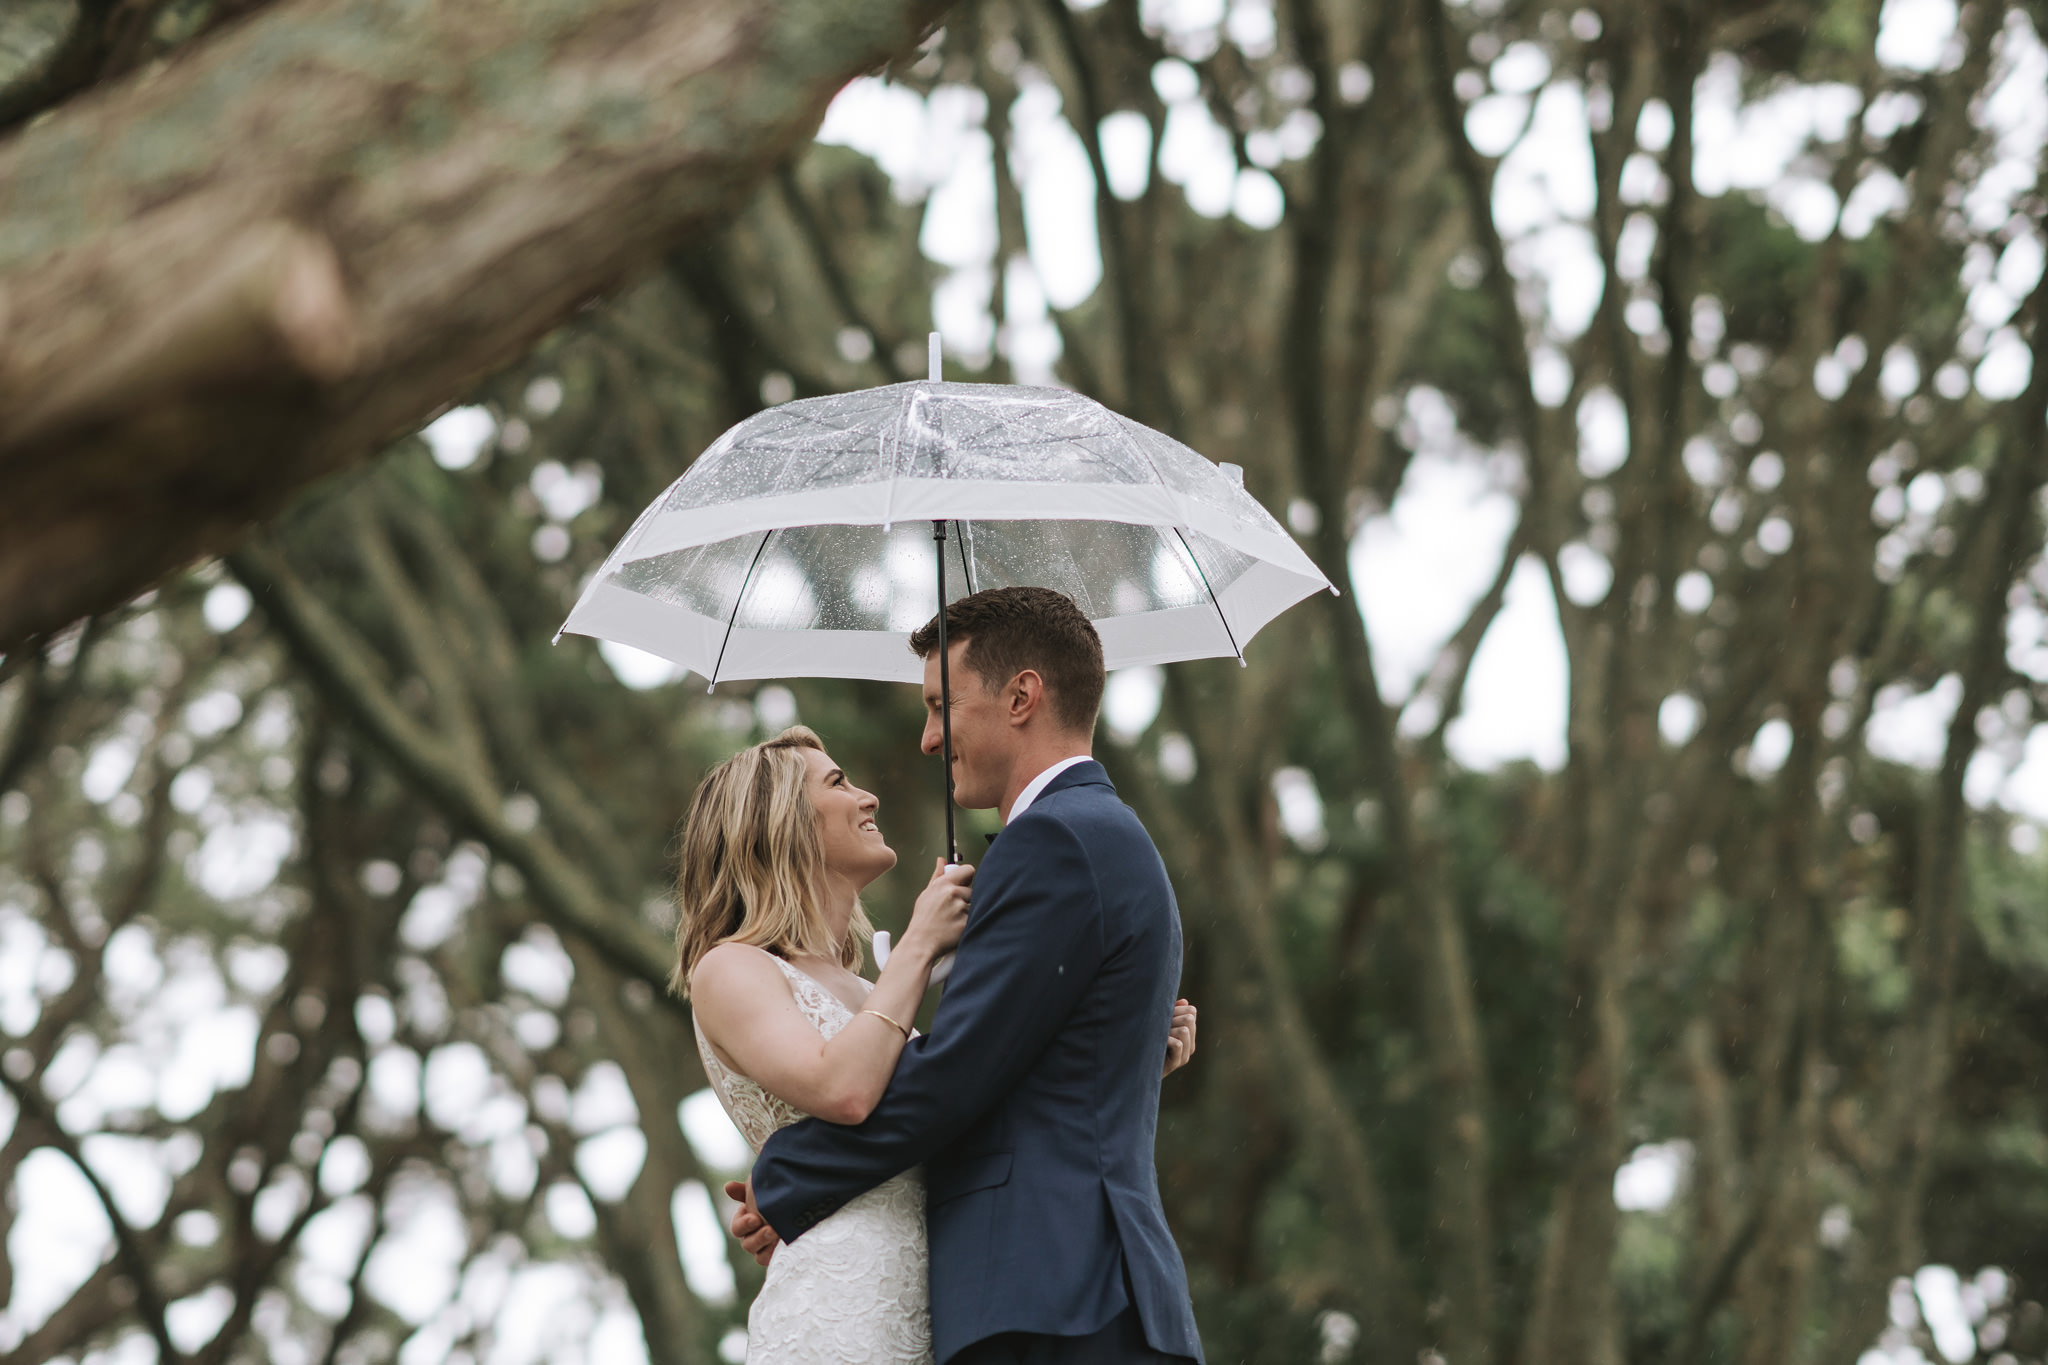 newfound-s-a-tauranga-new-zealand-wedding-photography-184